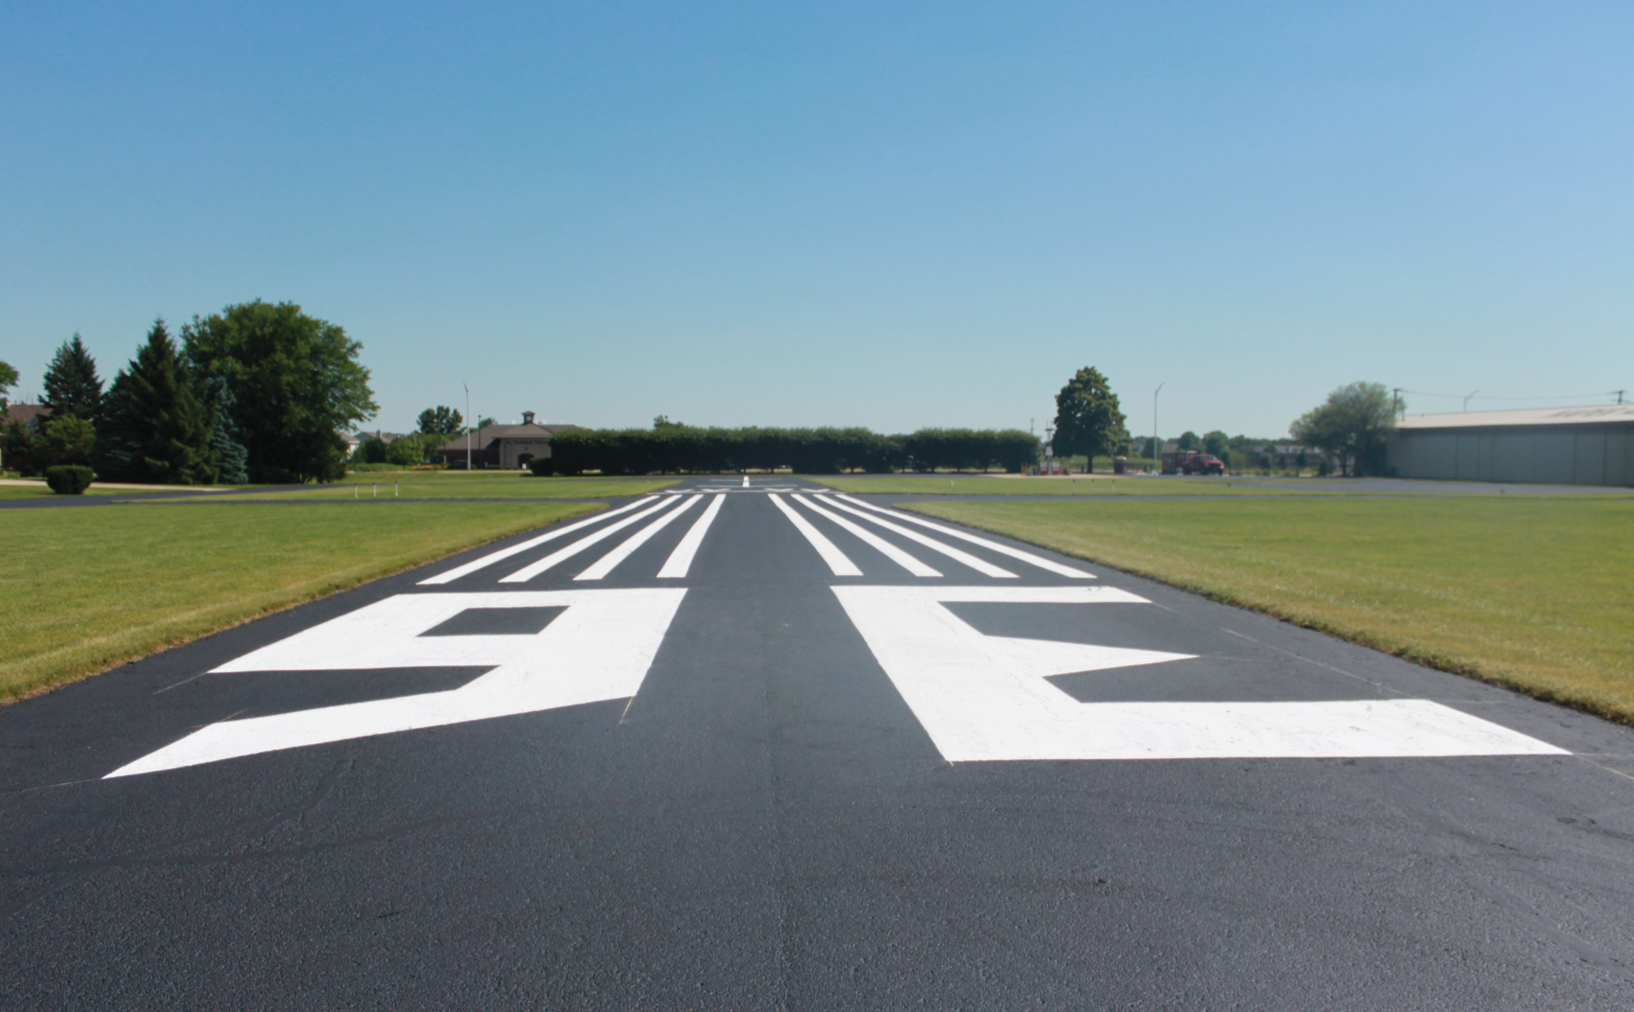 naper aero club runway repair and restoration